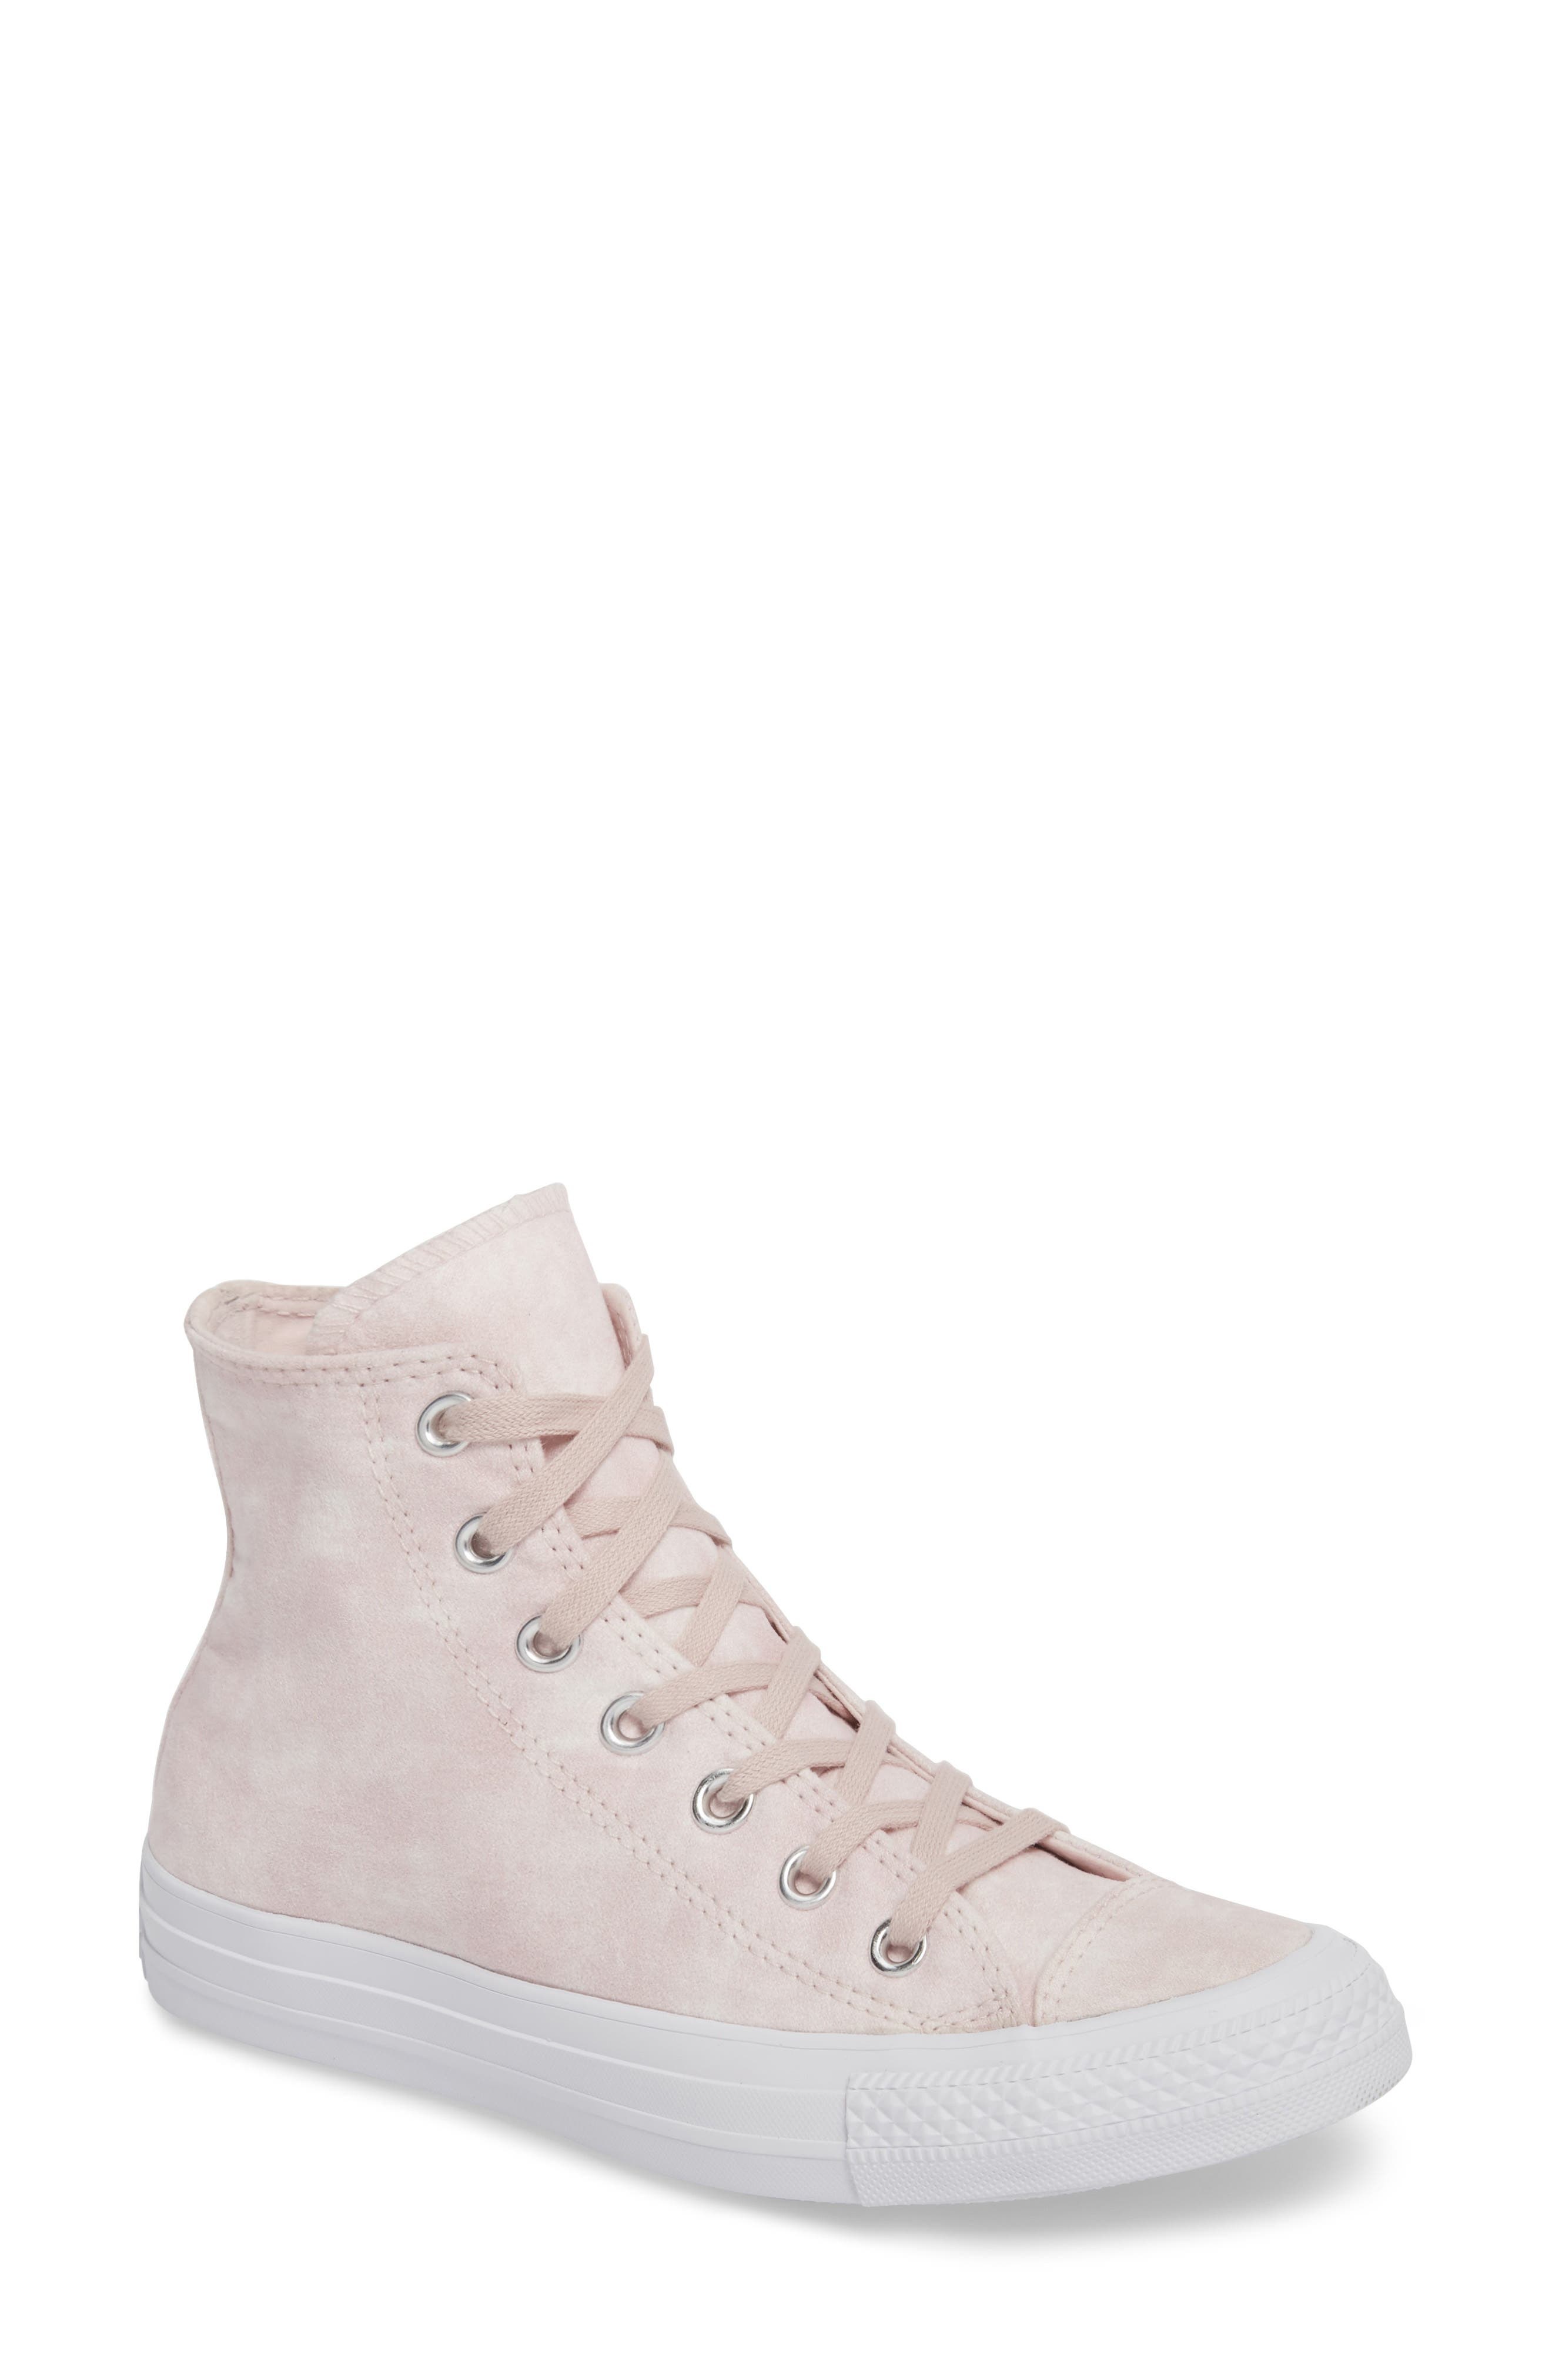 Chuck Taylor<sup>®</sup> All Star<sup>®</sup> Peached High Top Sneaker,                             Main thumbnail 1, color,                             653